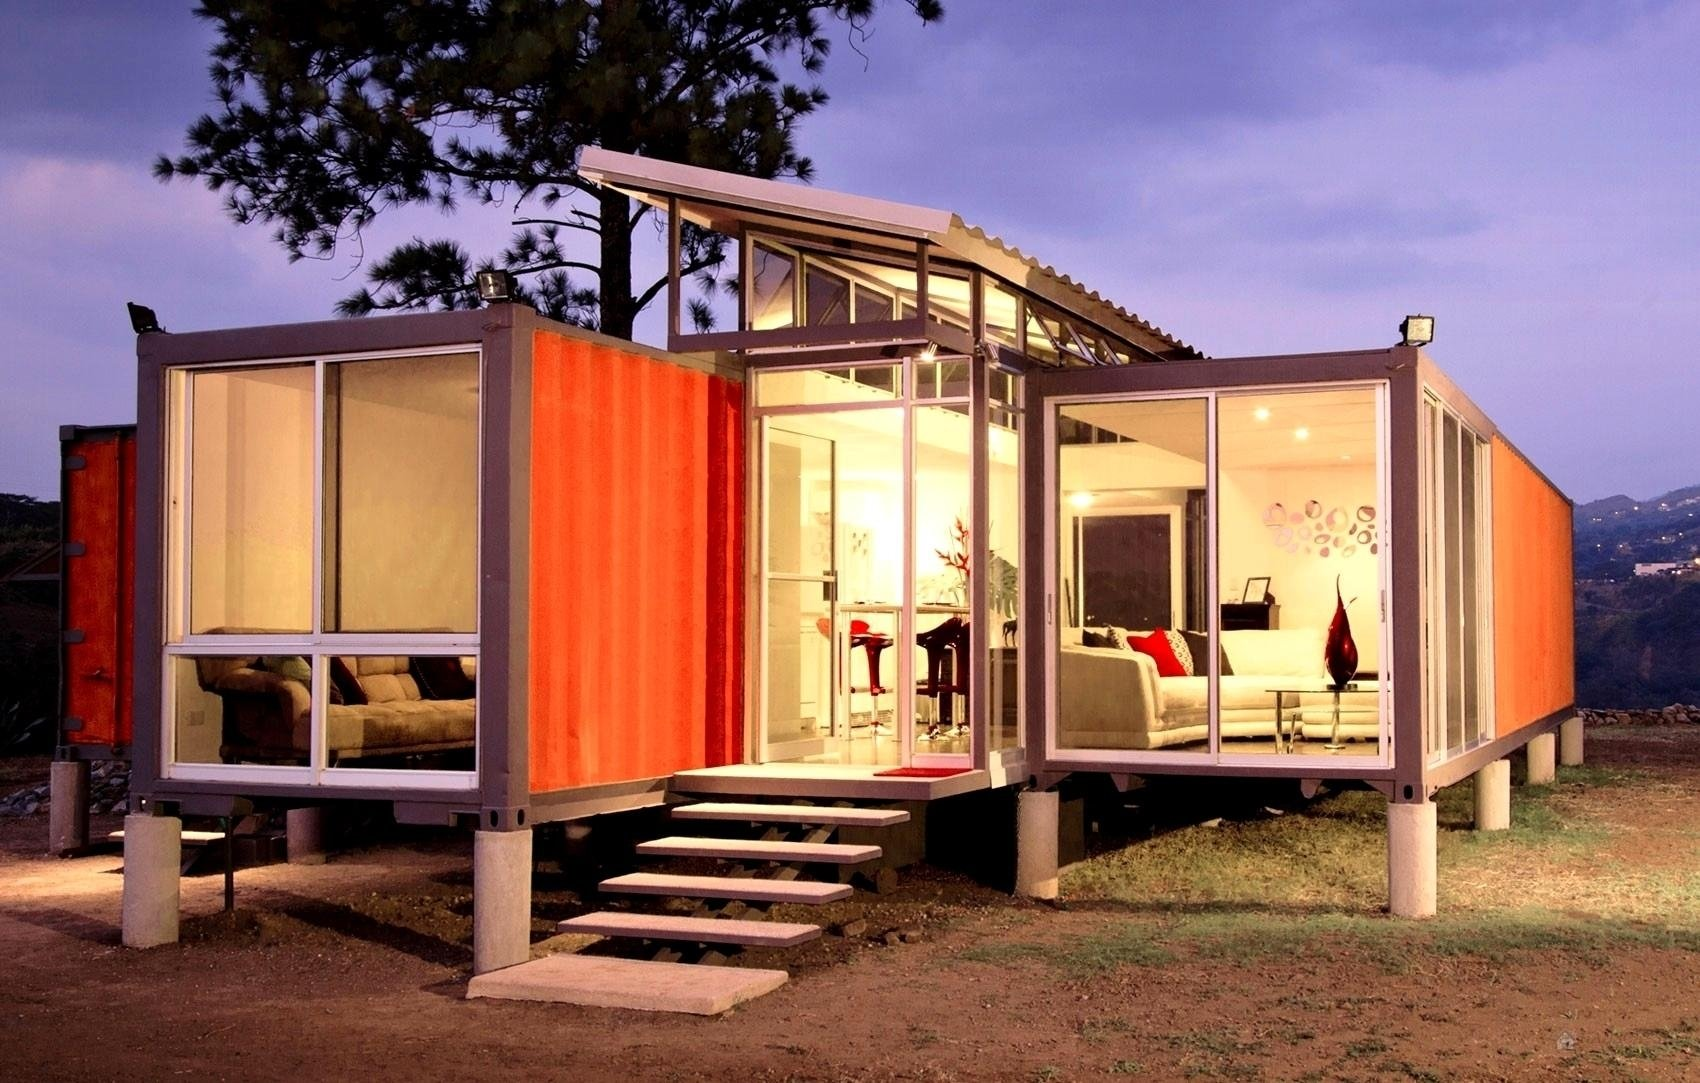 10 Most Recommended Off The Grid Living Ideas breathtaking grid living ideas containers of hope off grid living 2021